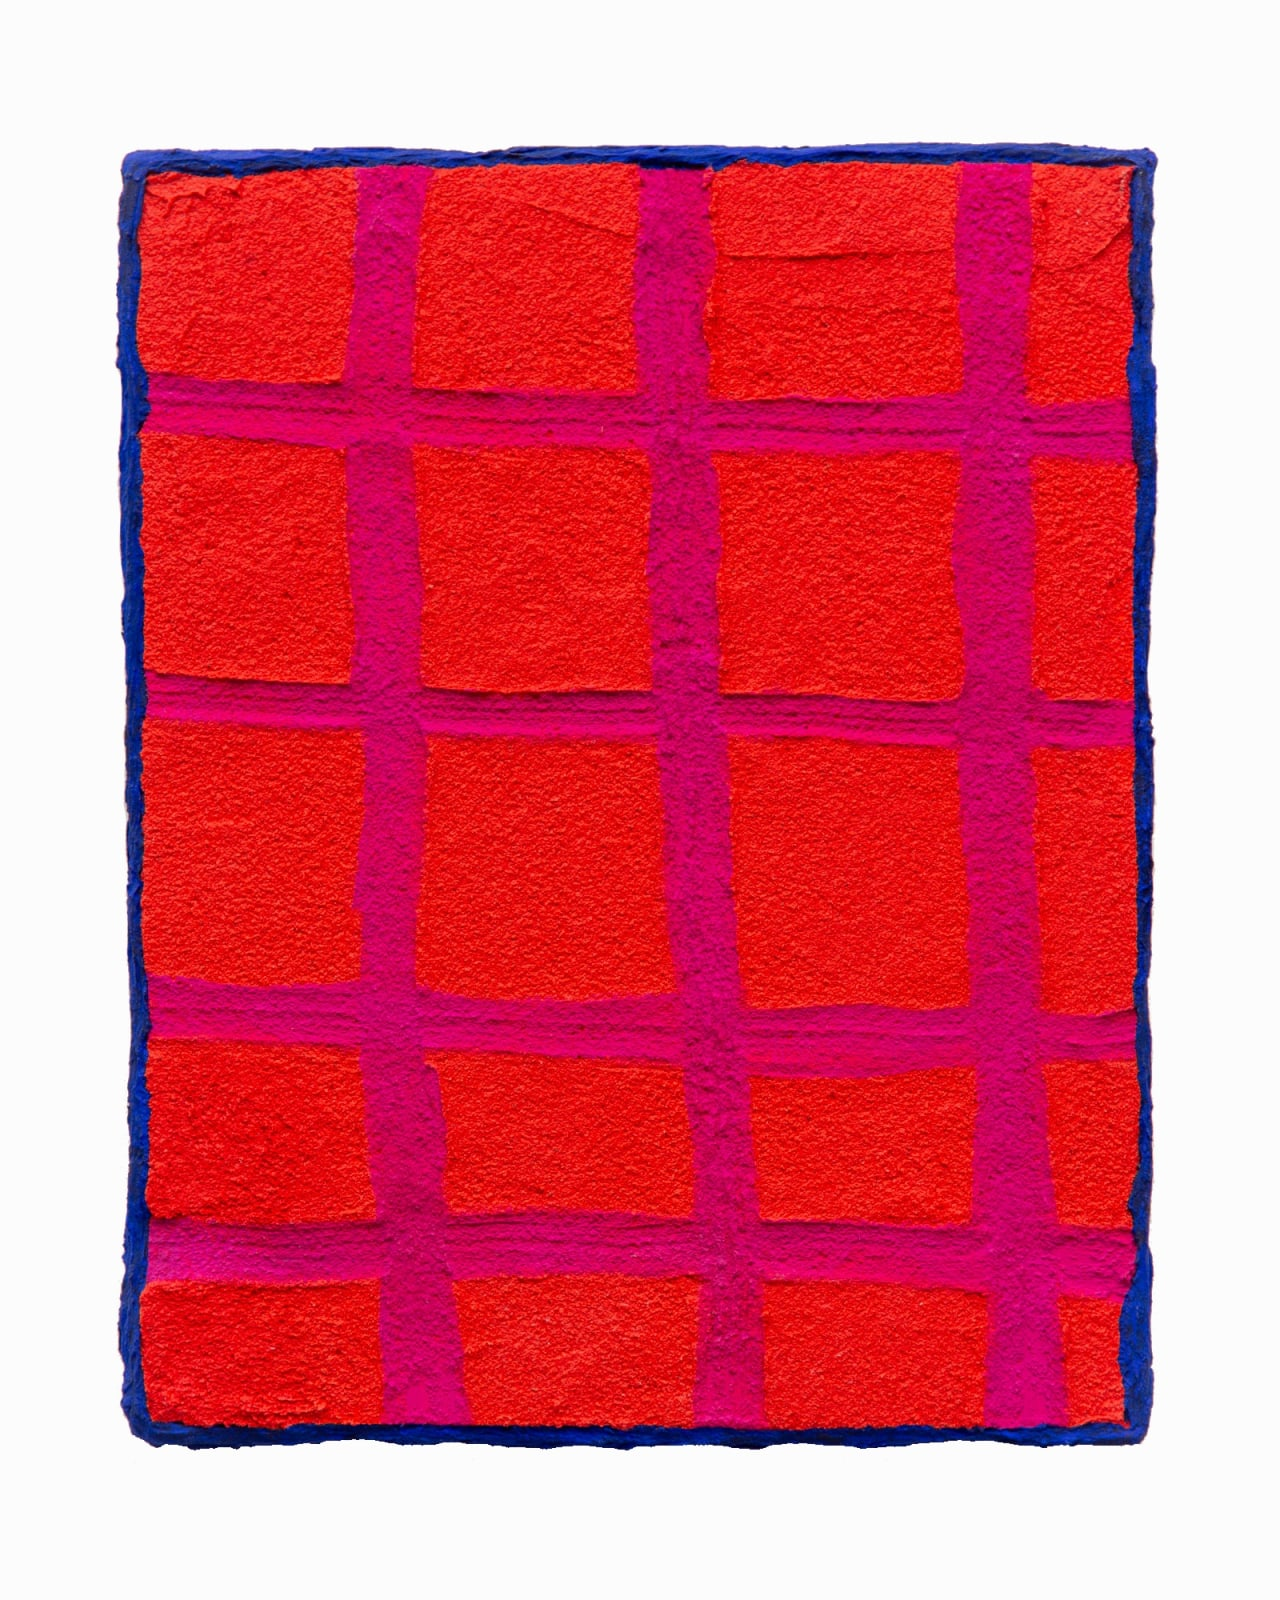 Nora Maité Nieves Red Amulet, 2020 Acrylic, flashe, coarse modeling paste, fiber-paste, and rhinestone on wood panel 14 x 11 in 35.6 x 27.9 cm